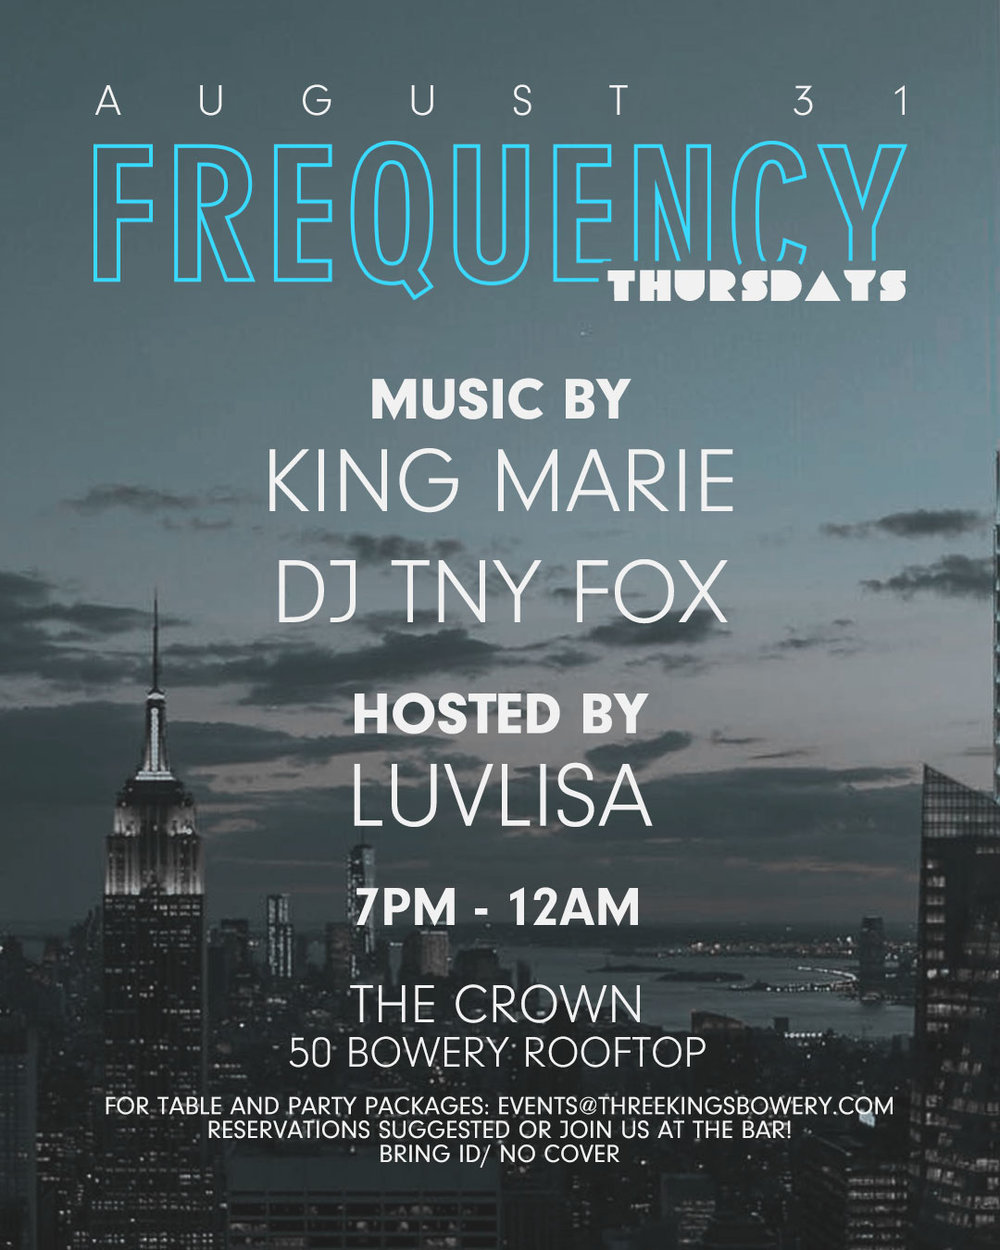 Frequency-Thurs-Aug-31.jpg